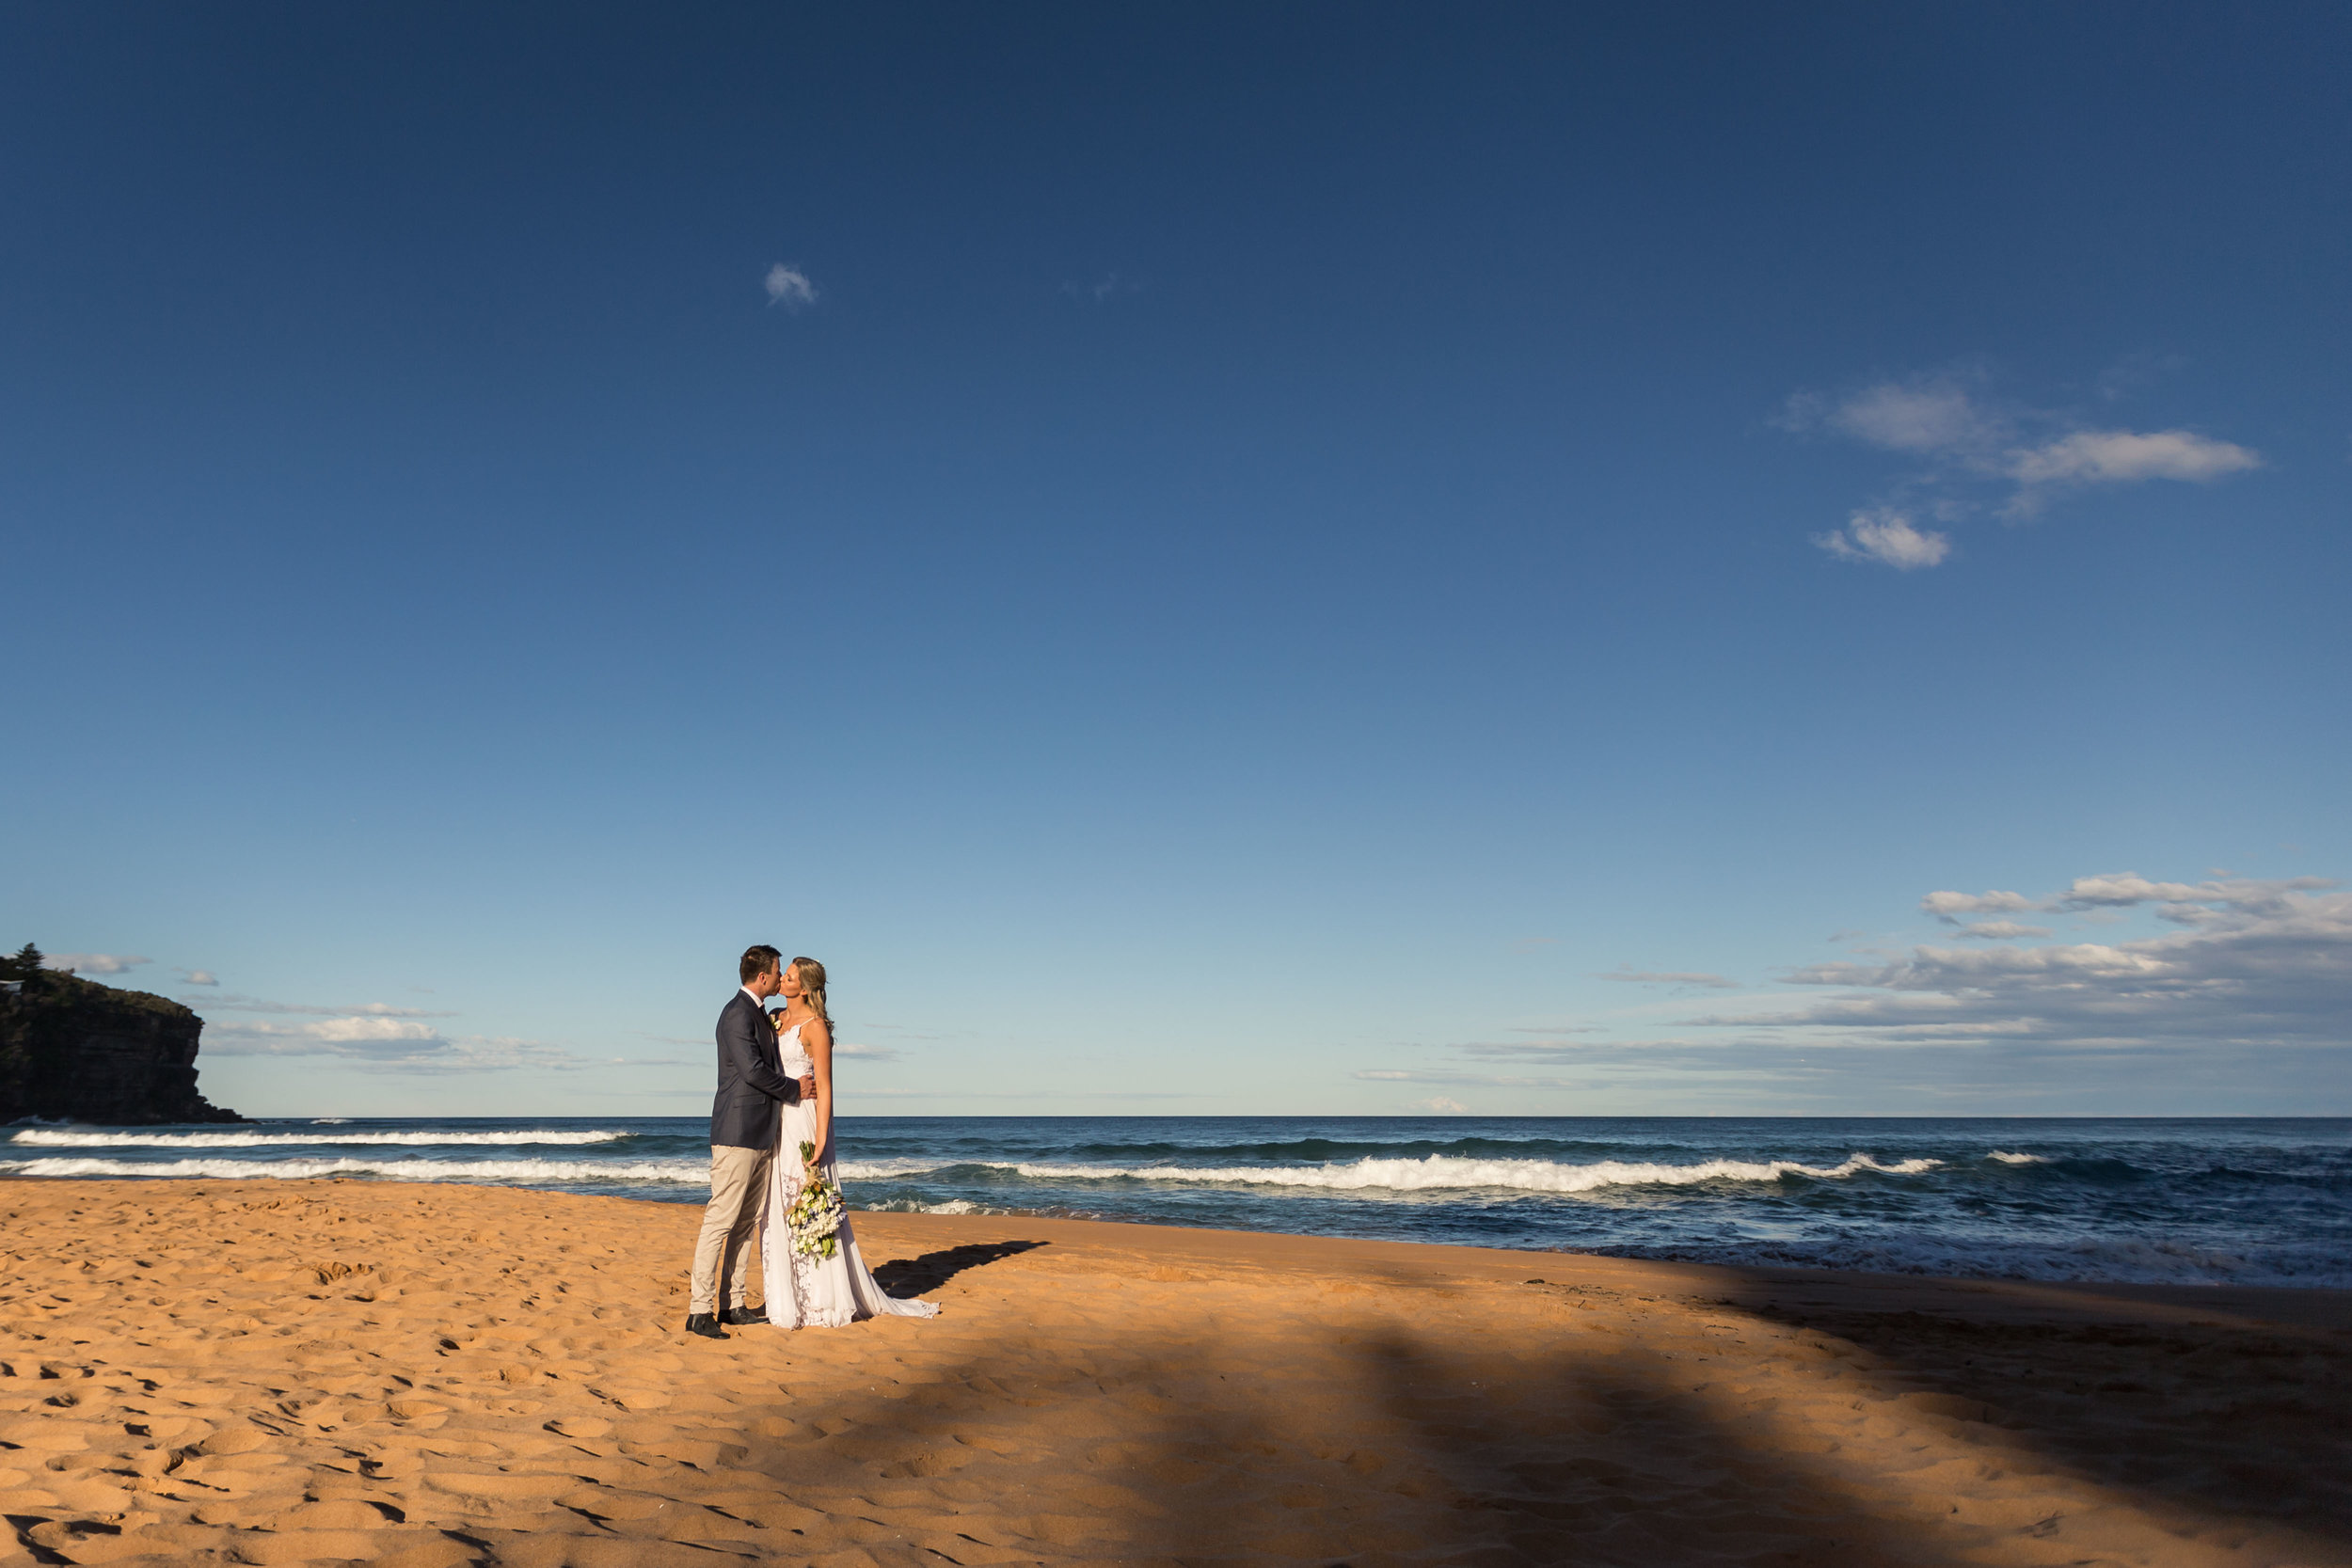 Bilgola Beach Wedding. Bride and Groom photo on Beach. Relaxed, natural wedding photography Sydney.